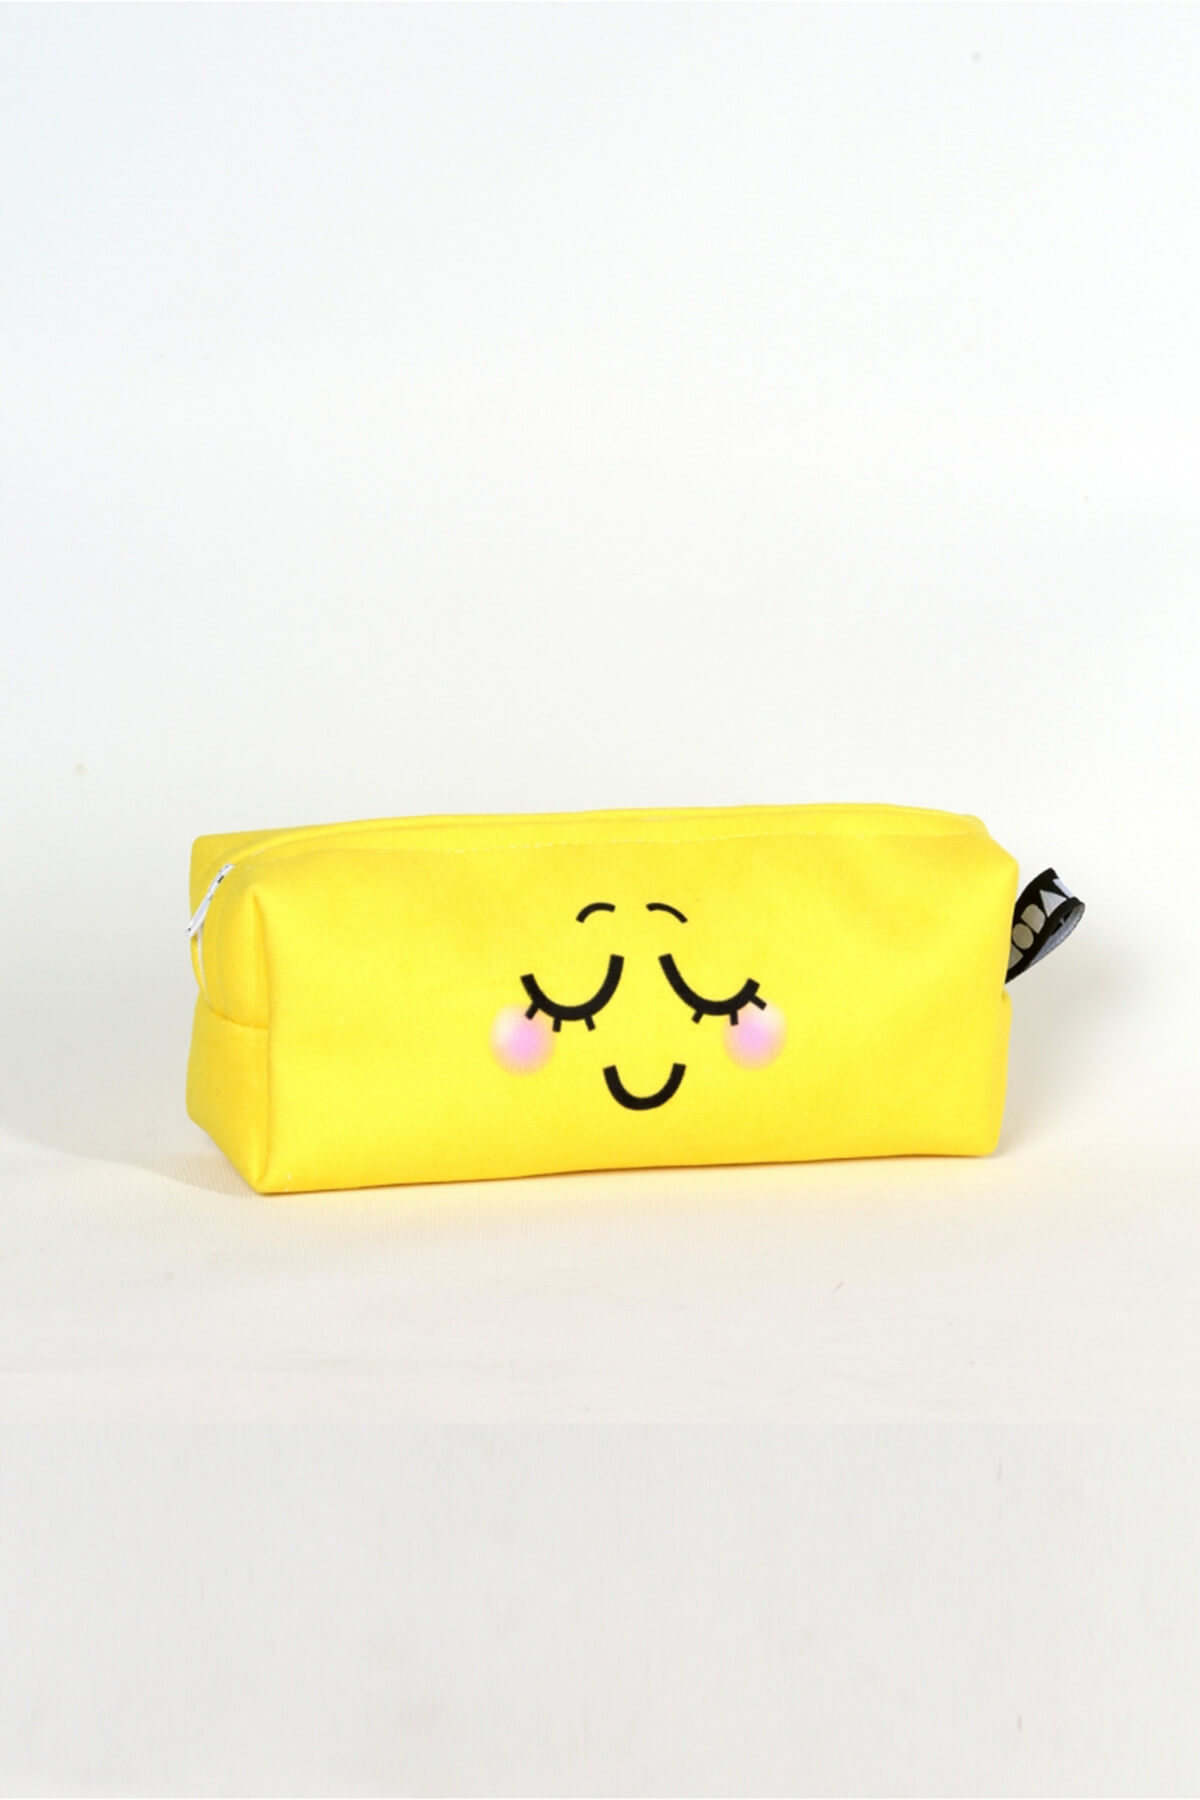 2021 New Fashion Cute Smiley Pencil Makeup Box Patterned With Digital Printing Yellow Free and Fast Shipping